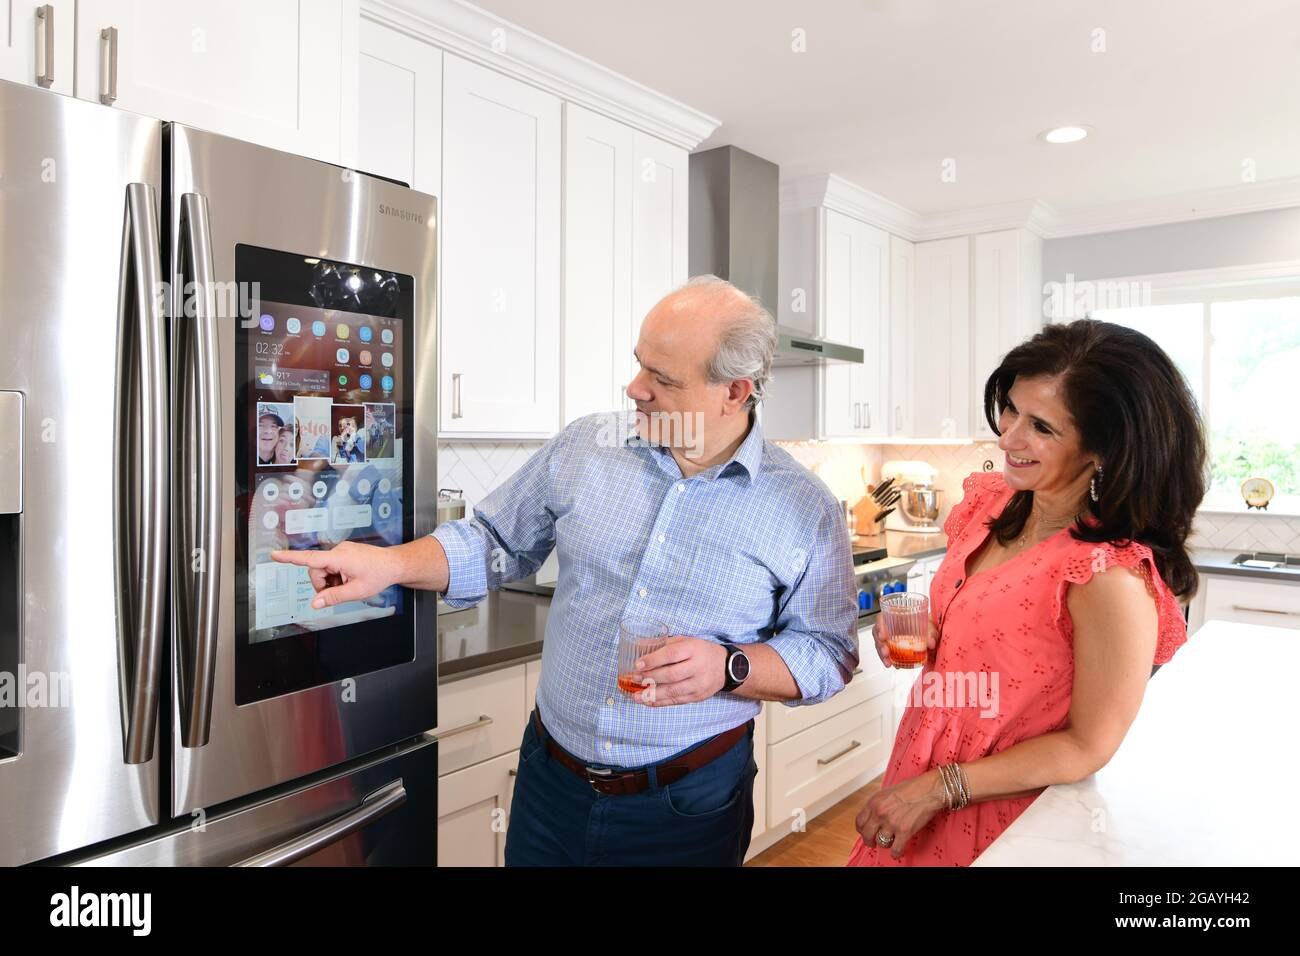 a-couple-uses-a-samsung-smart-refrigerator-in-their-home-kitchen-with-a-touch-screen-and-wifi-2GAYH42.jpg